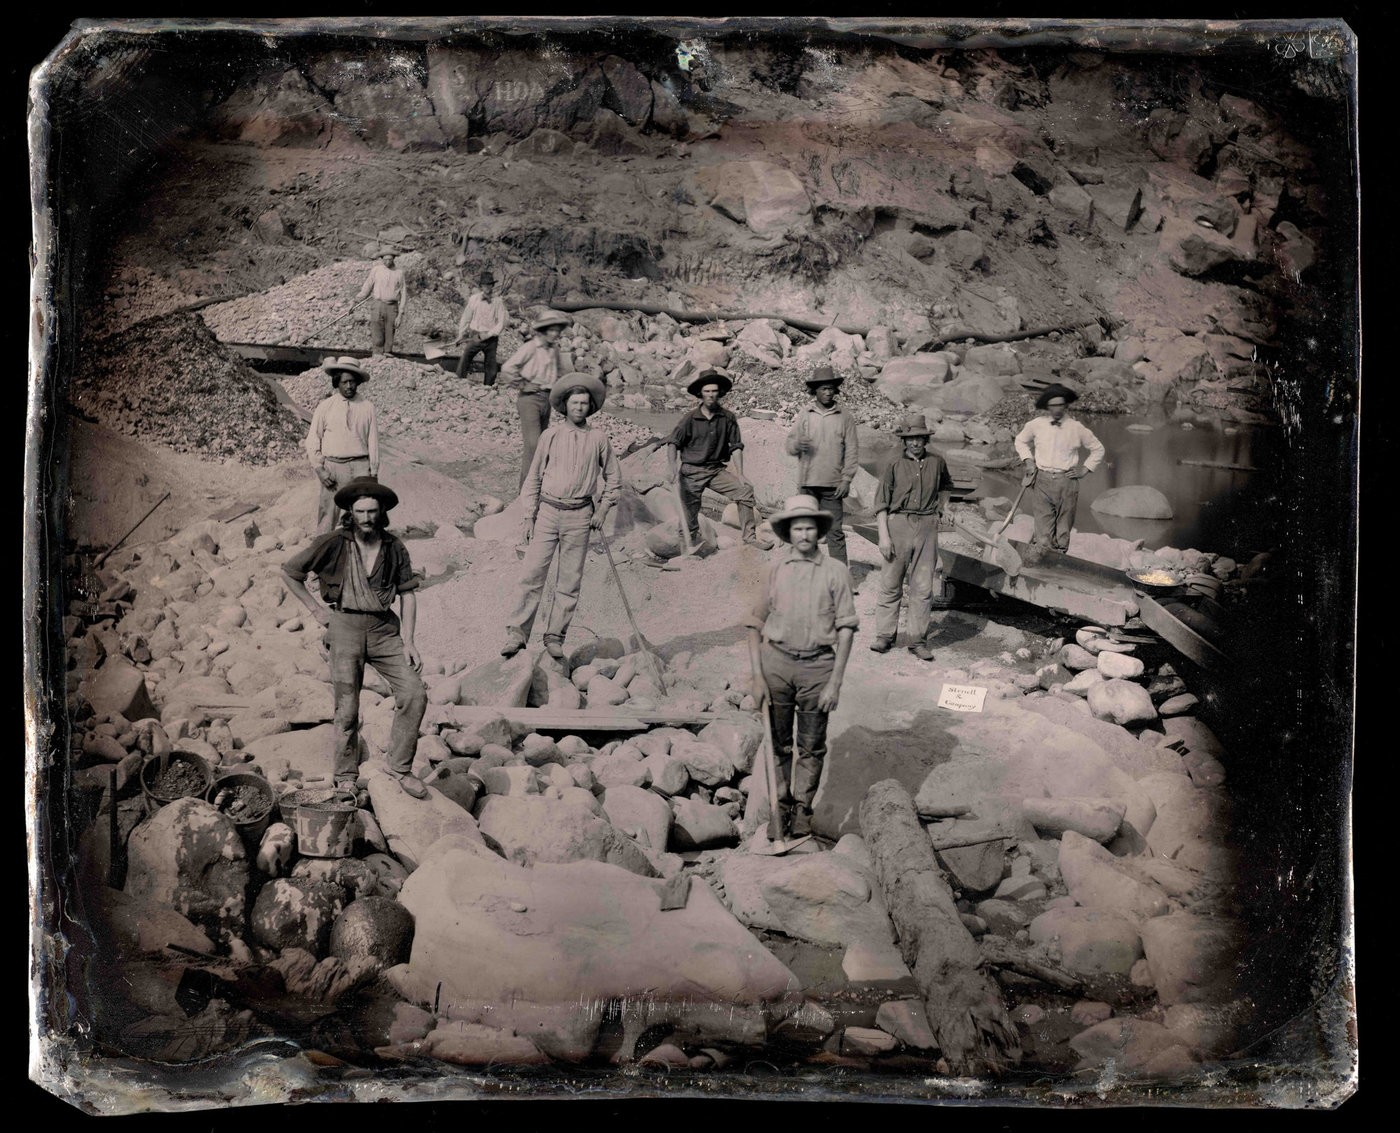 Medium outdoor view of miners from sterrett   company  1852 c unknown